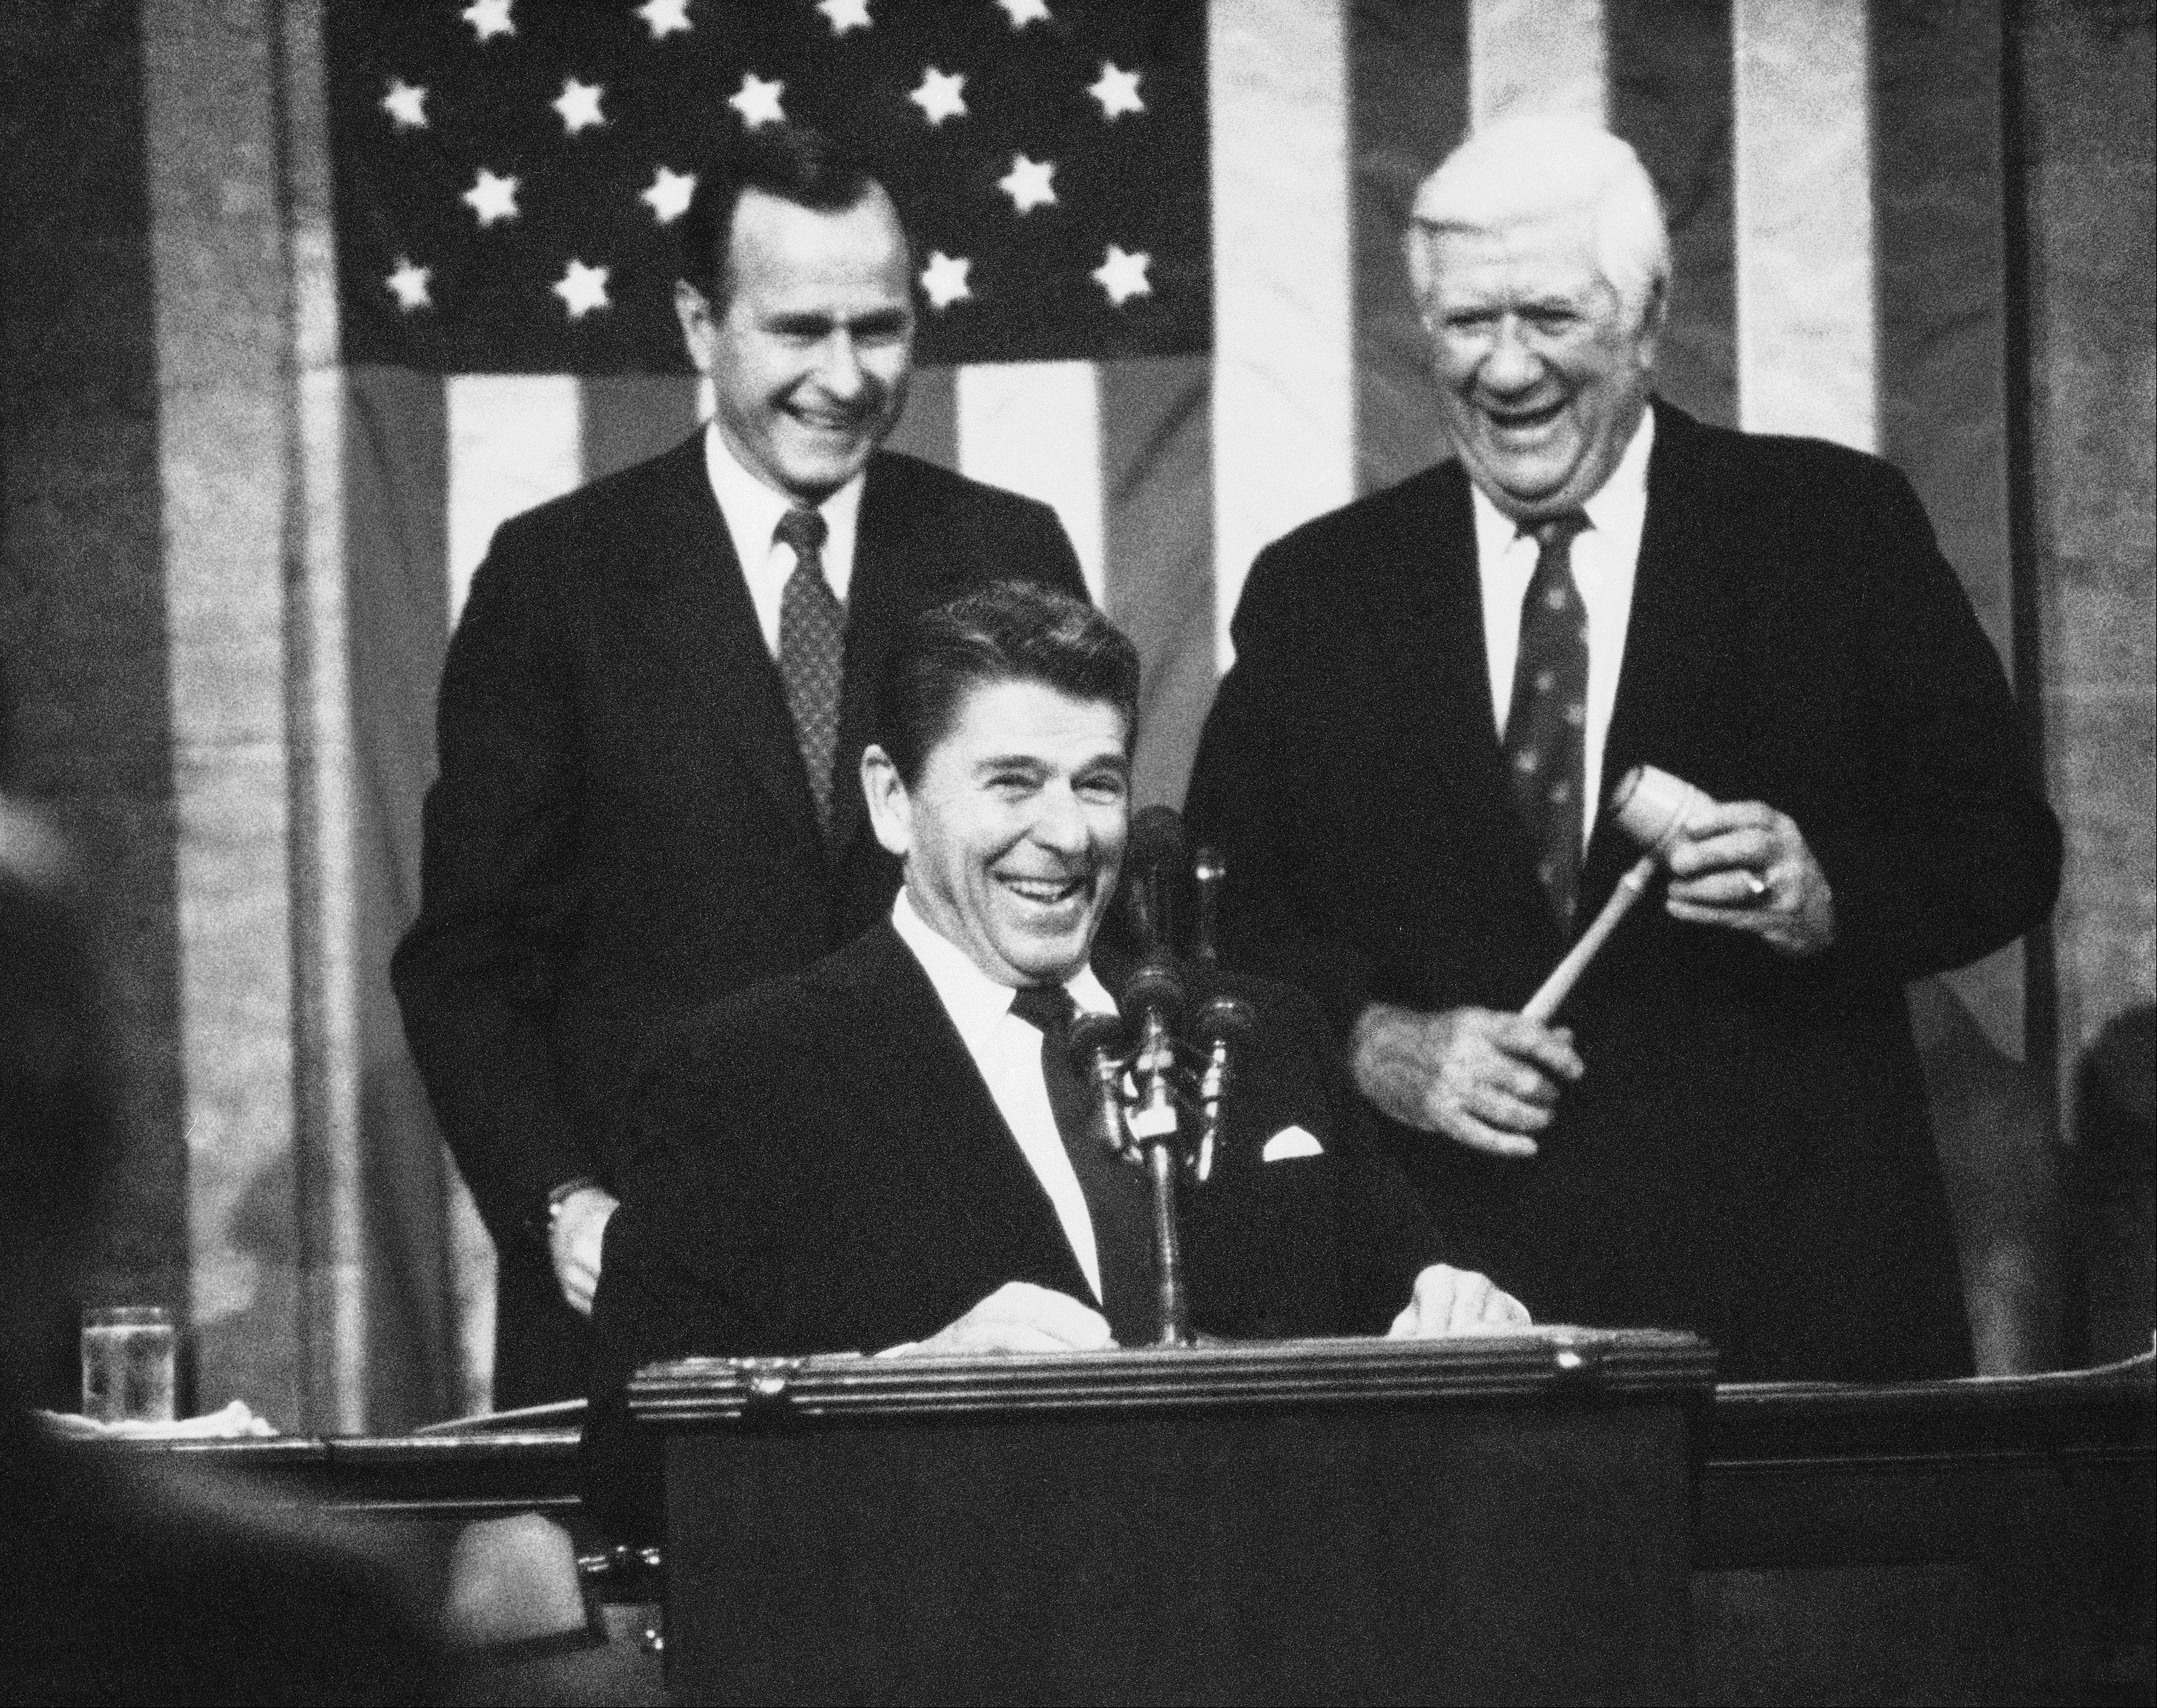 President Ronald Reagan is applauded prior to making his State of the Union Address Jan. 25, 1983. Vice President George Bush is at left, and House Speaker of the House Thomas P. O'Neill Jr. is at right.